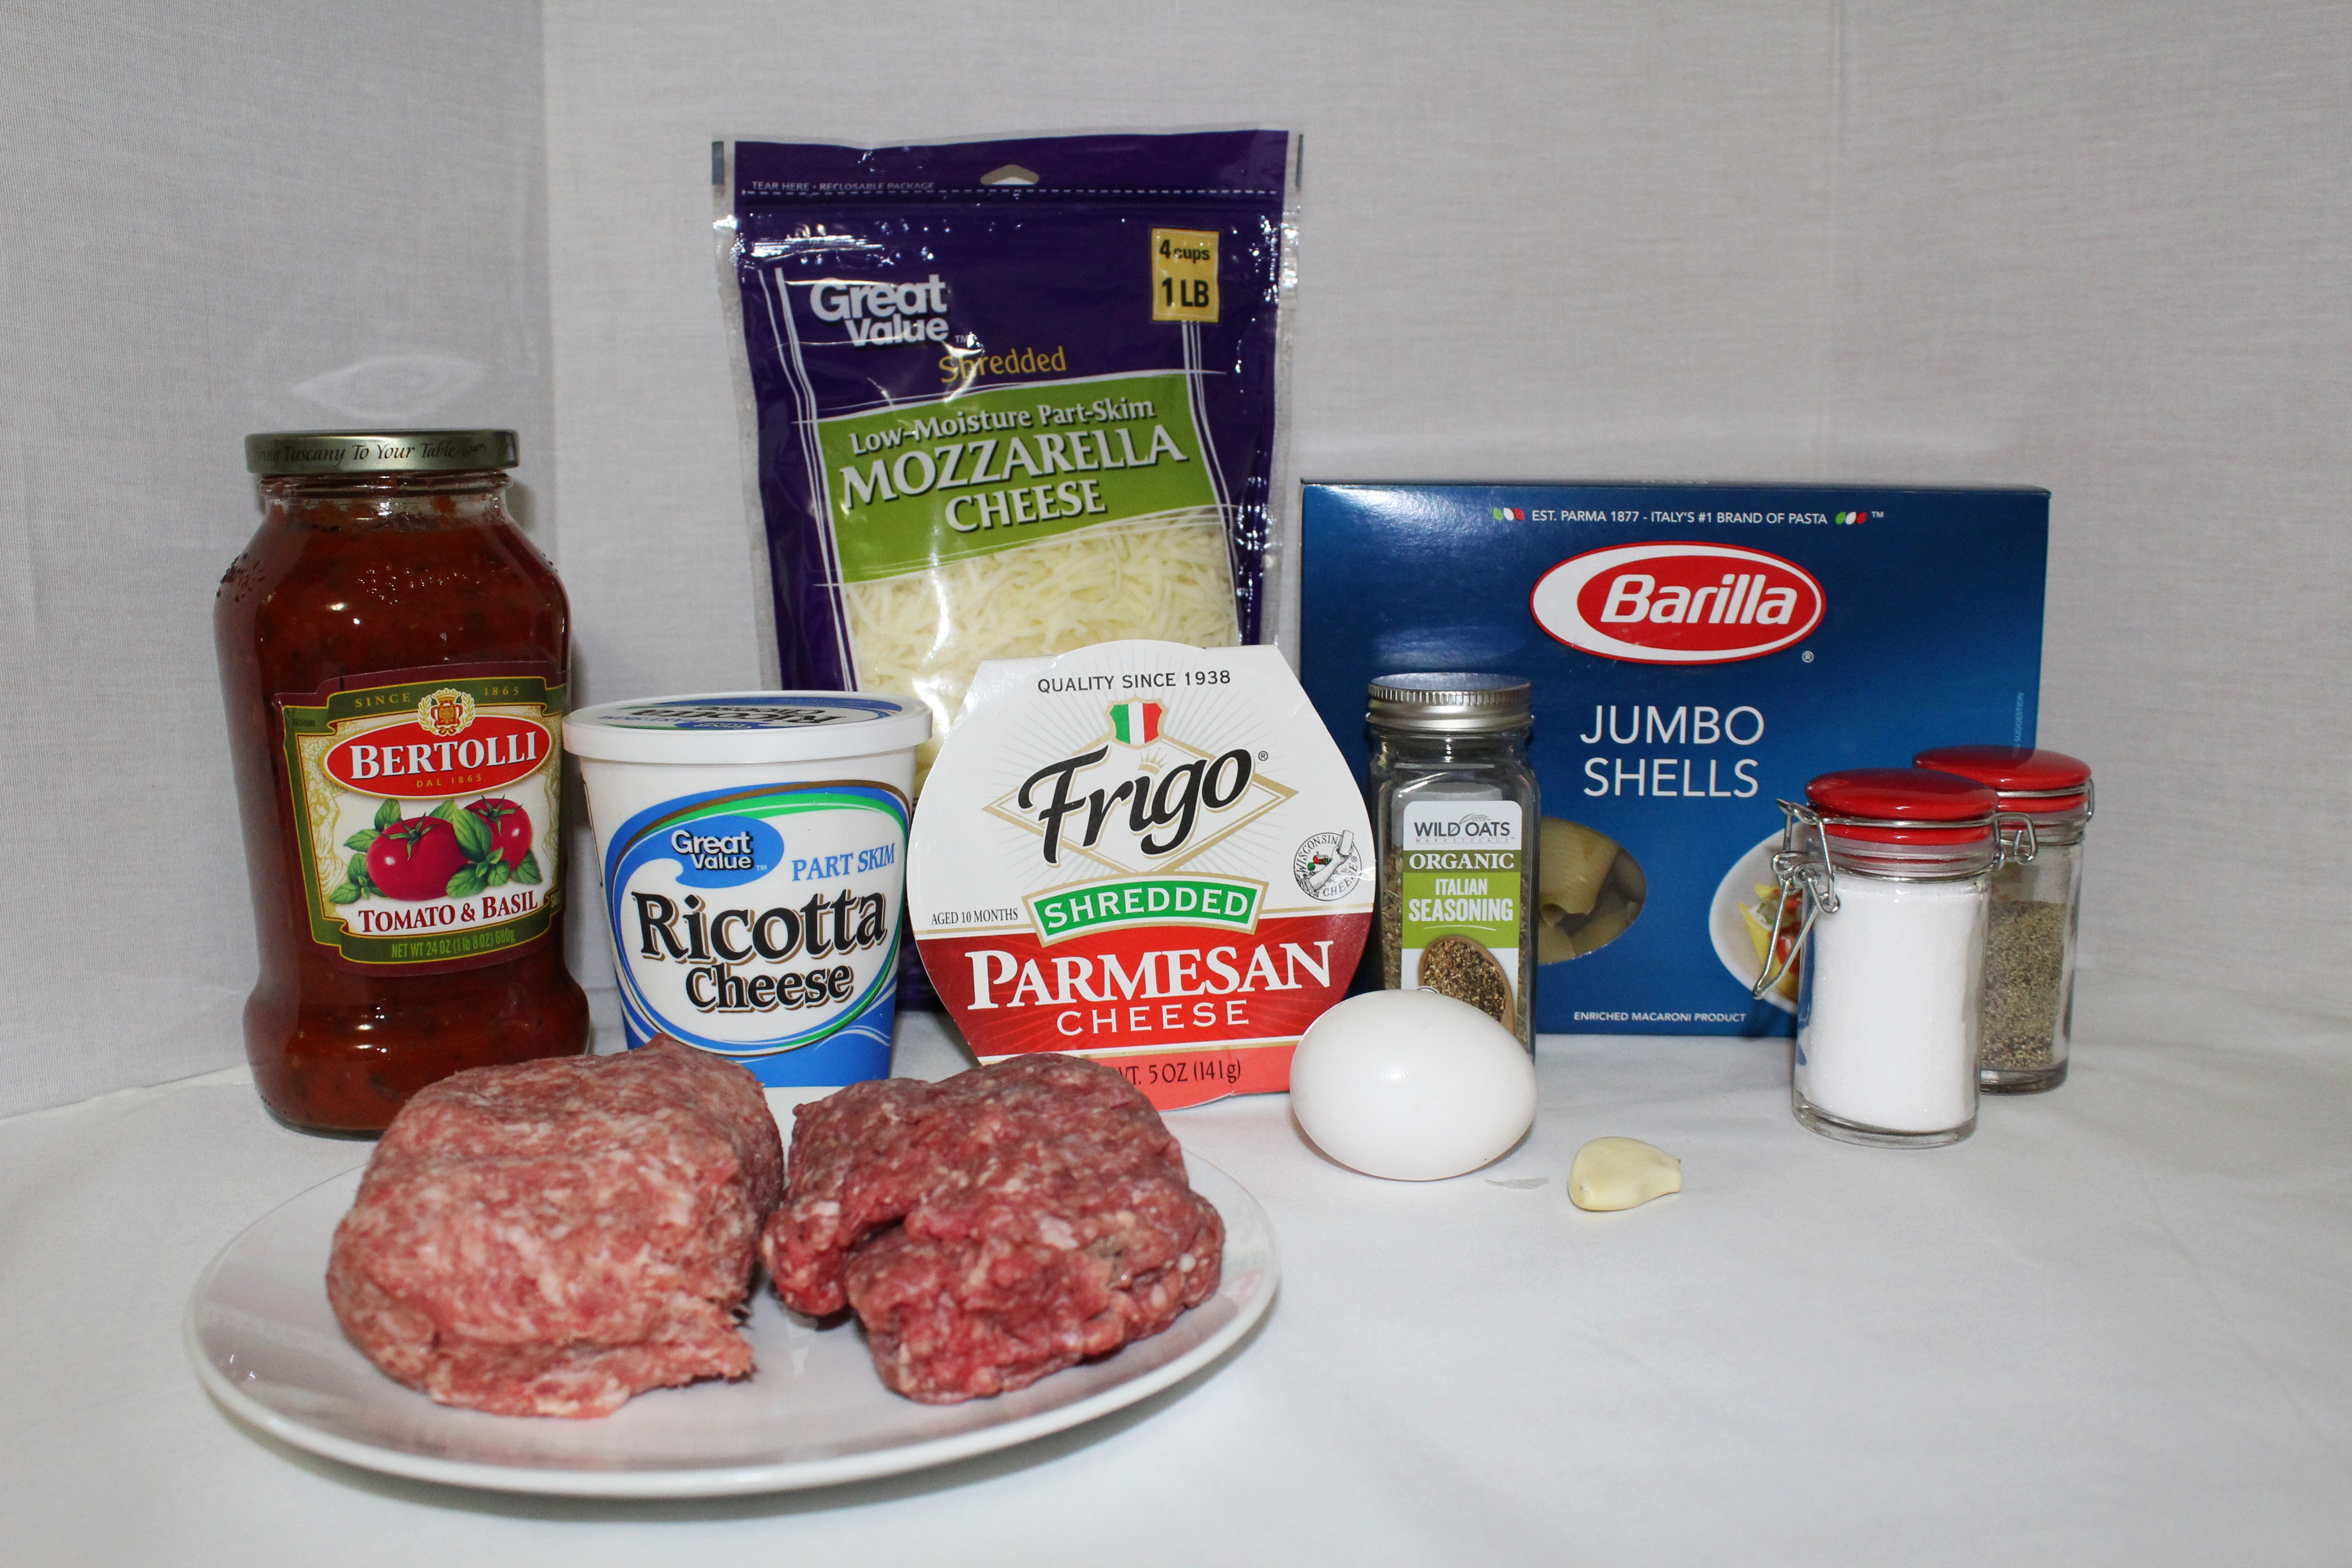 This is a quick and easy pasta dish using beef, sausage, jar sauce, three cheeses and jumbo pasta shells.